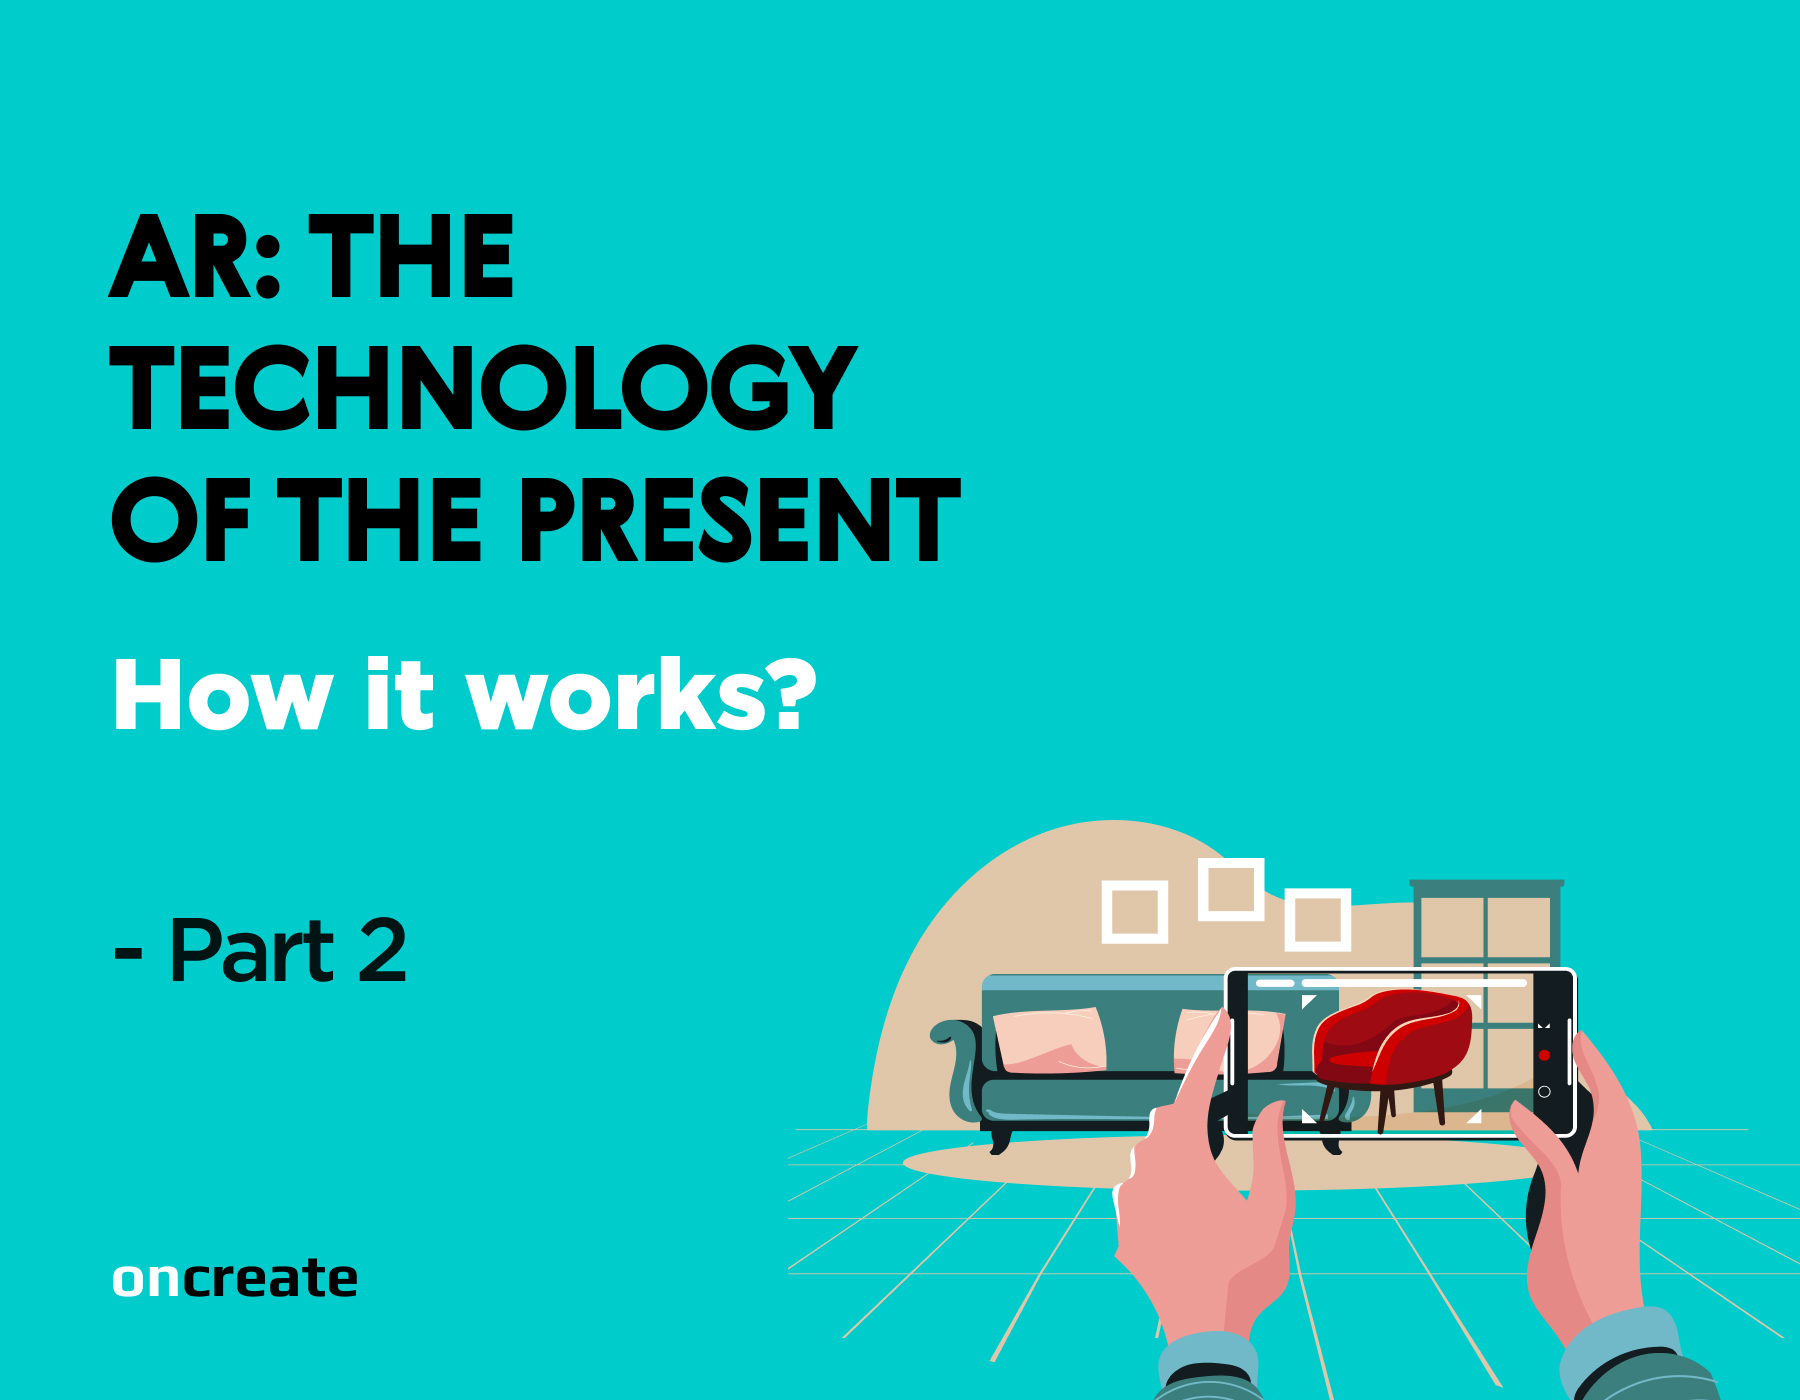 AR: the technology of the present. How it works?